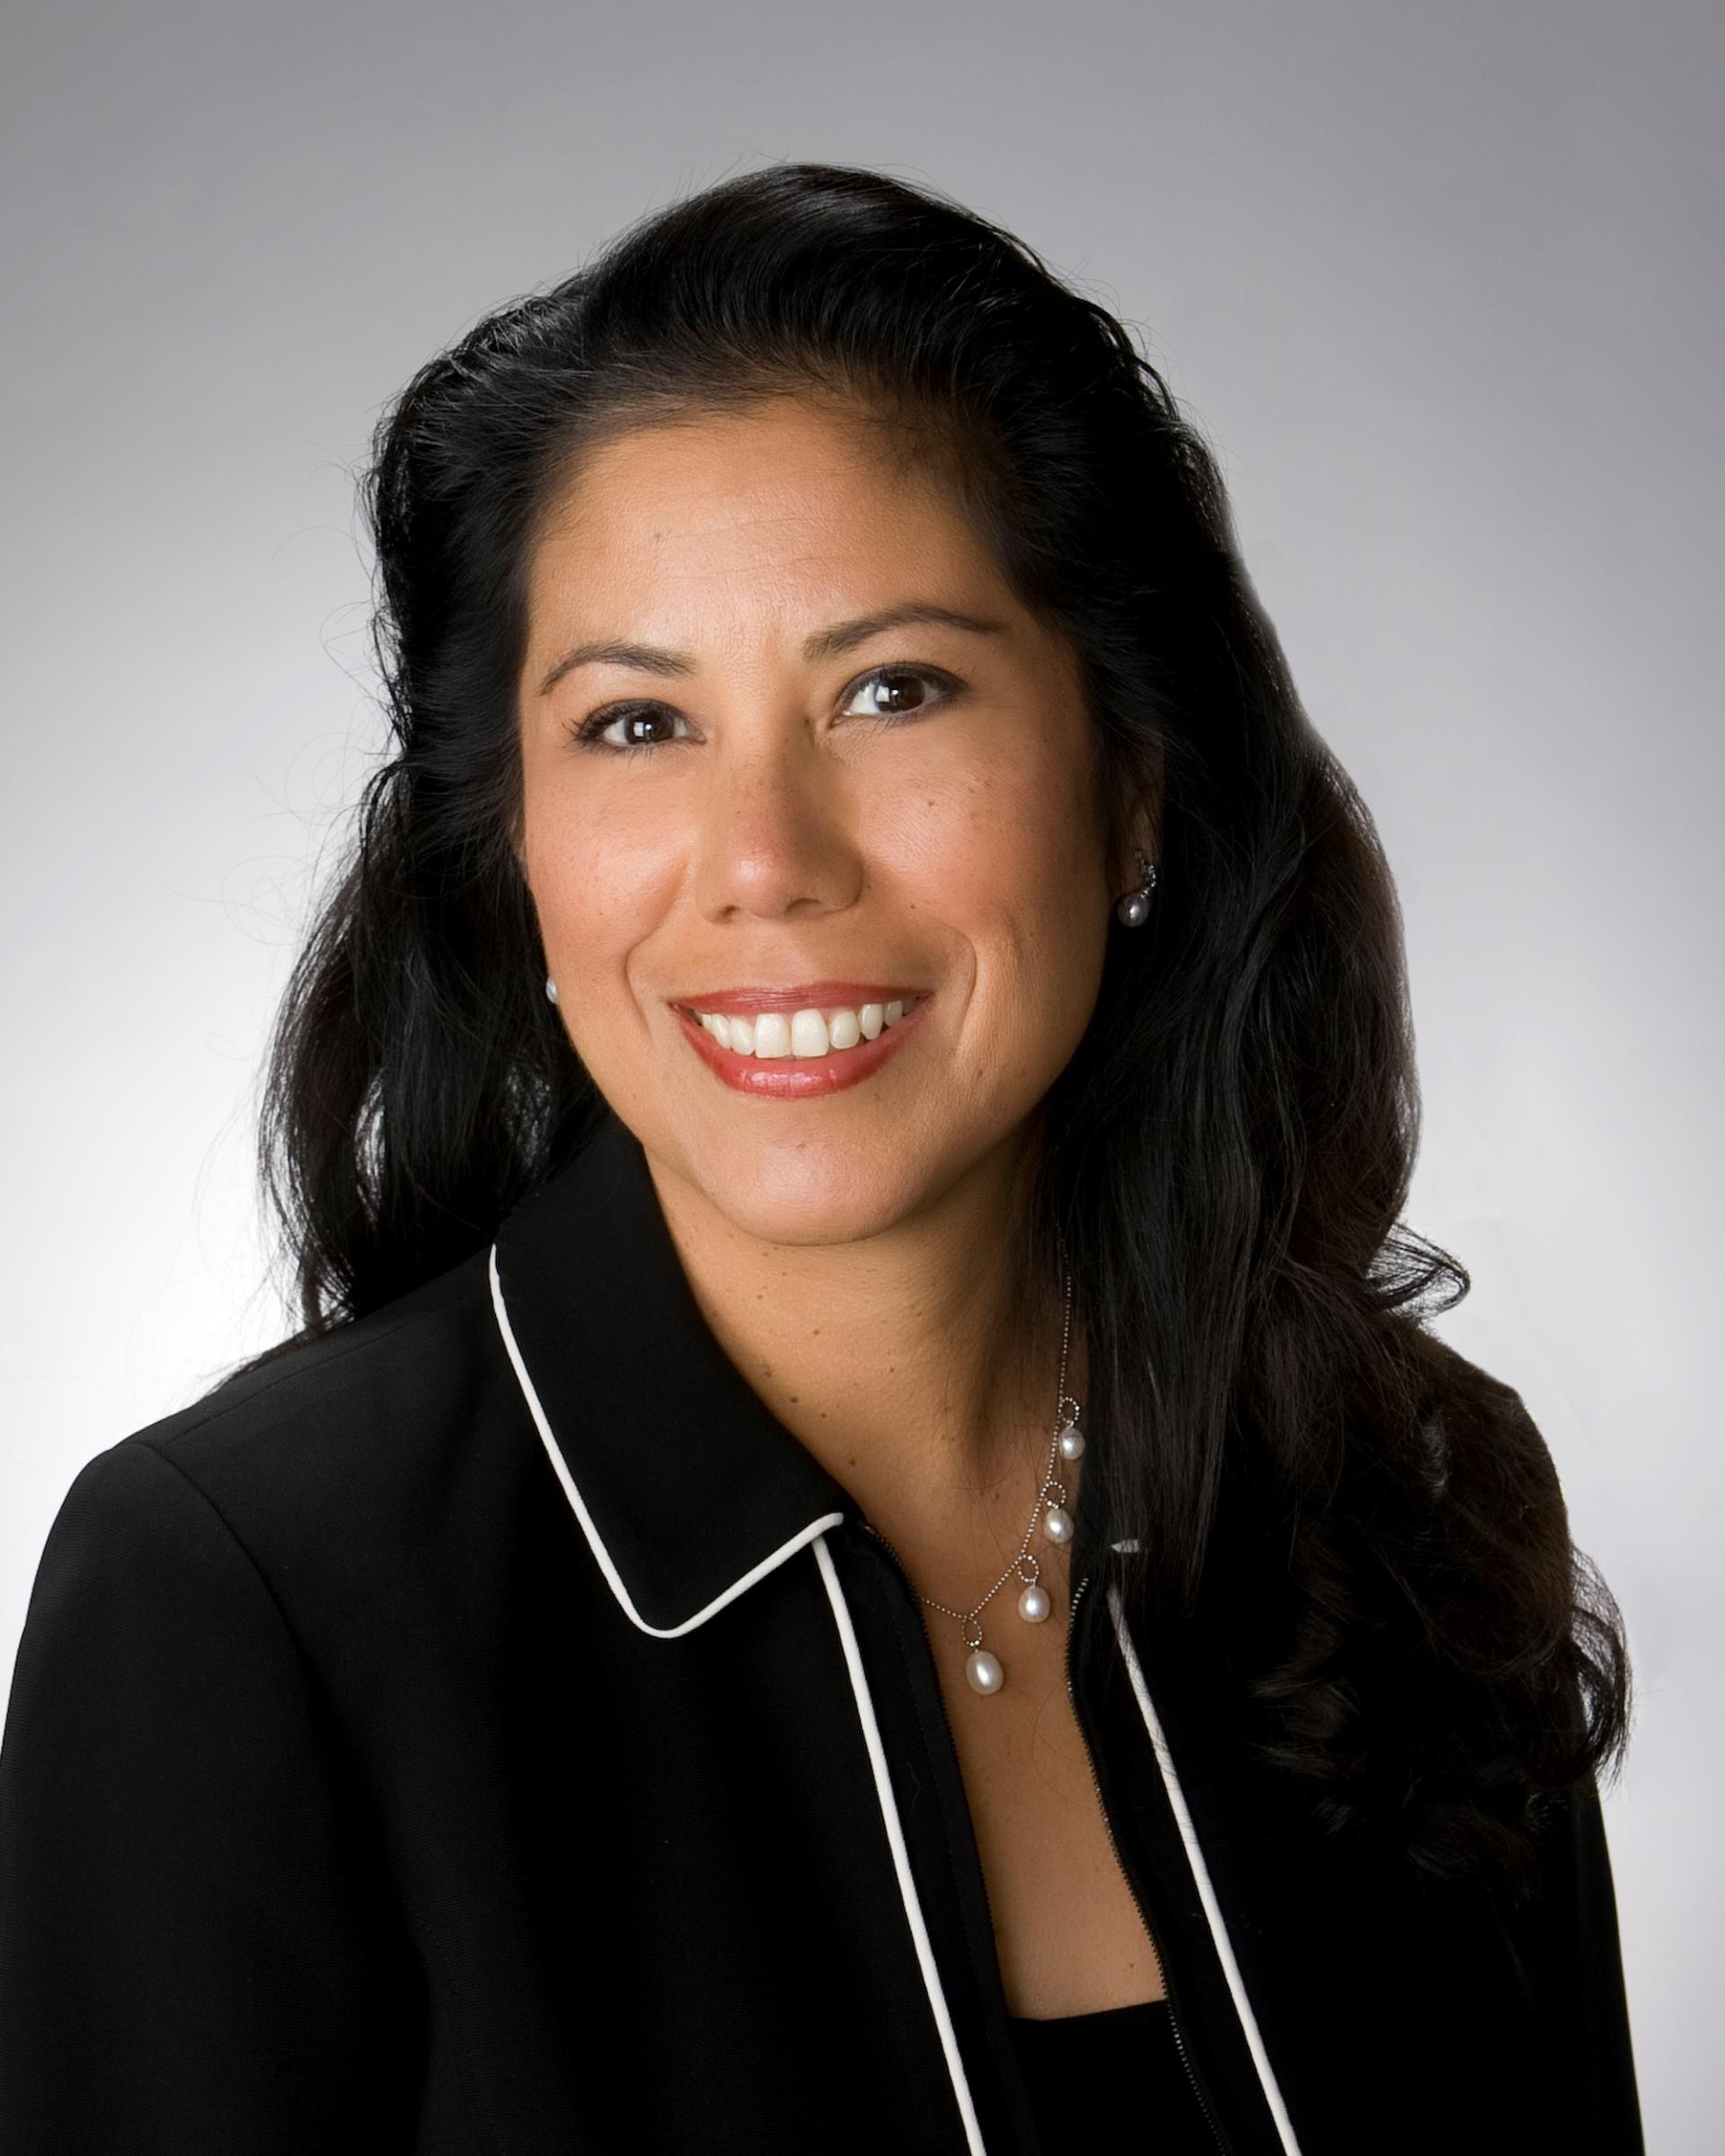 martha guerrero headshot